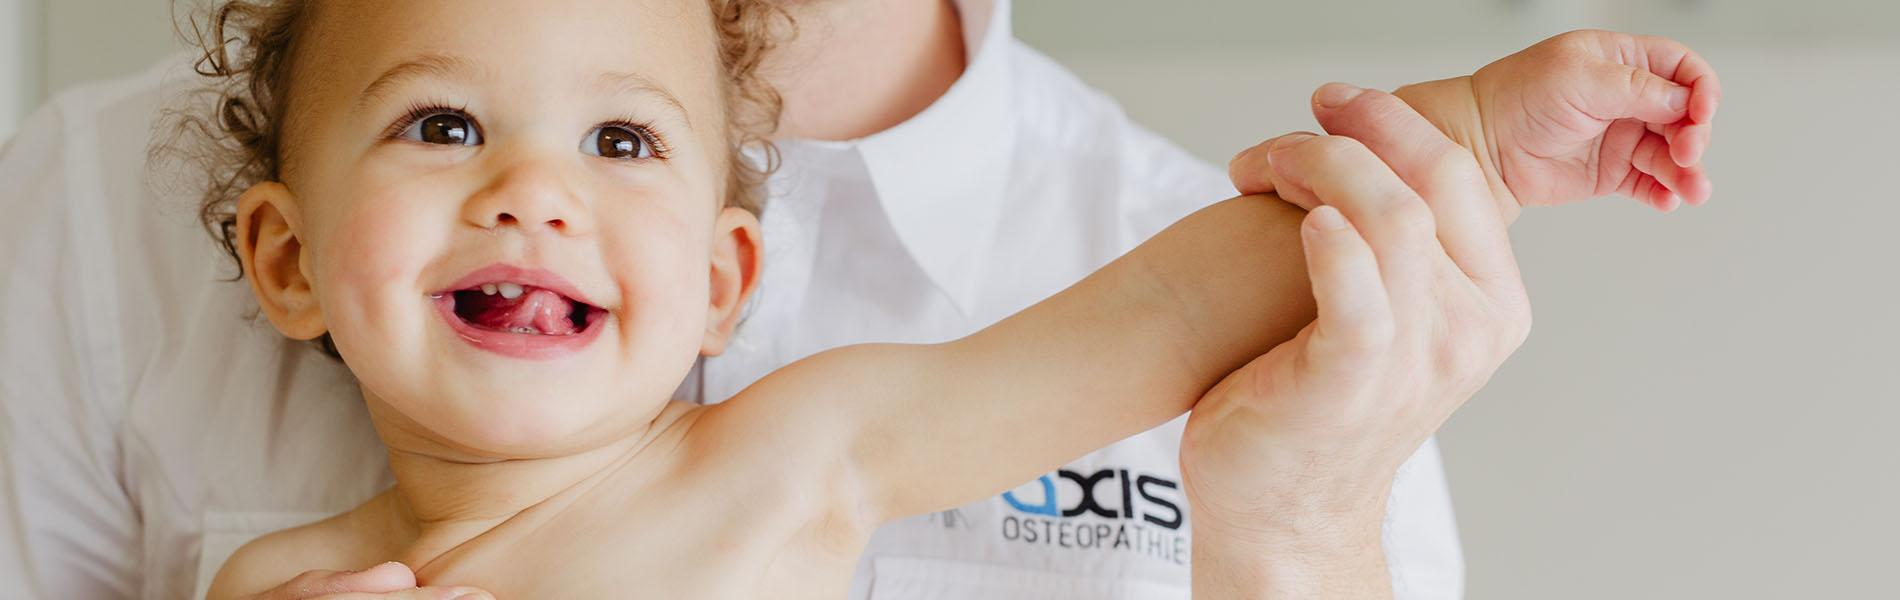 Axis Osteopathie